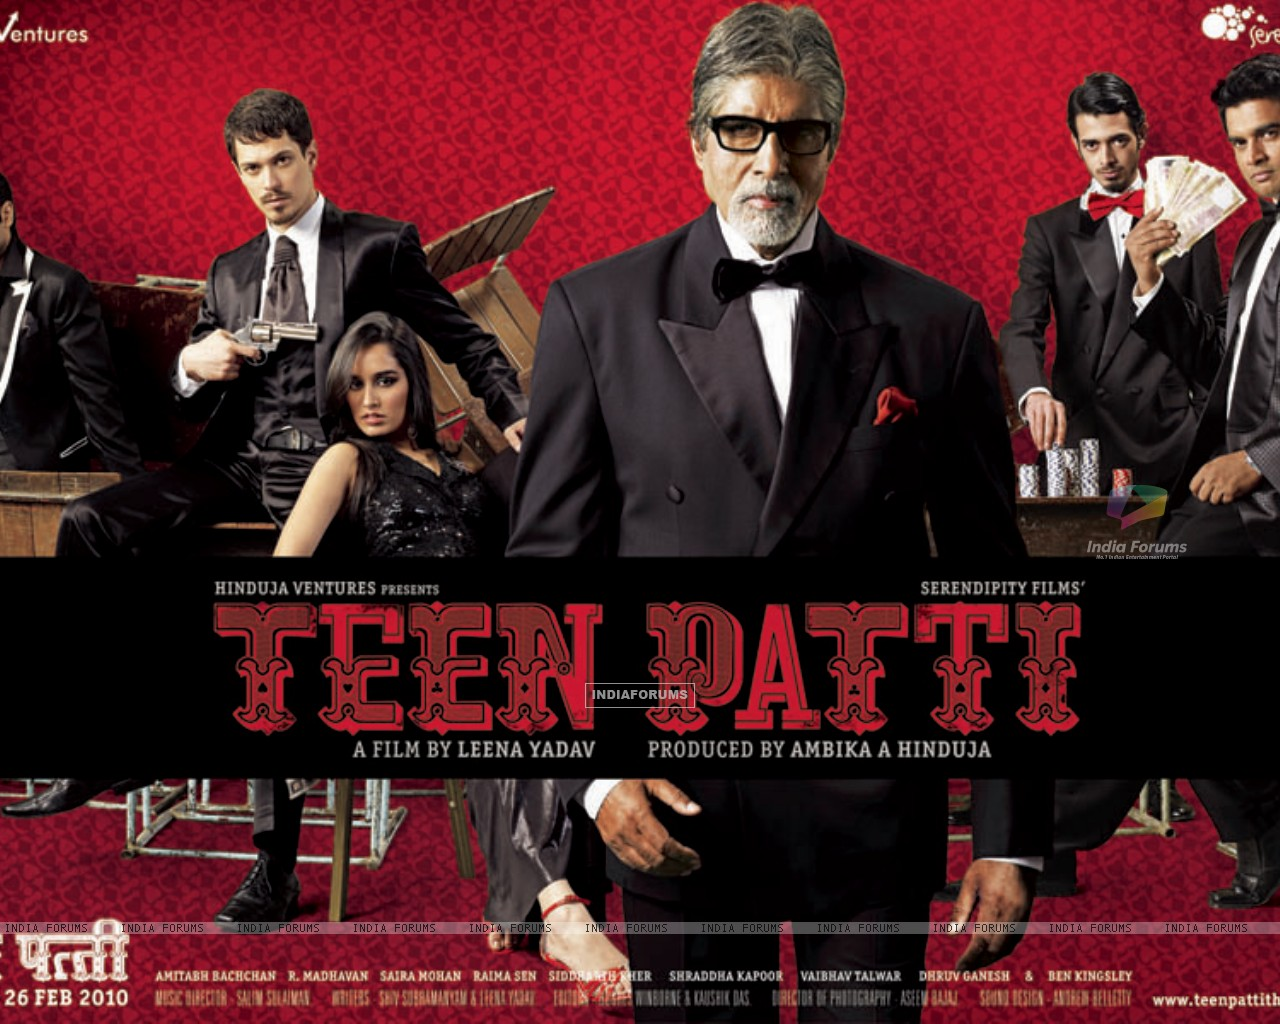 Wallpaper of Teen Patti movie (41713) size:1280x1024